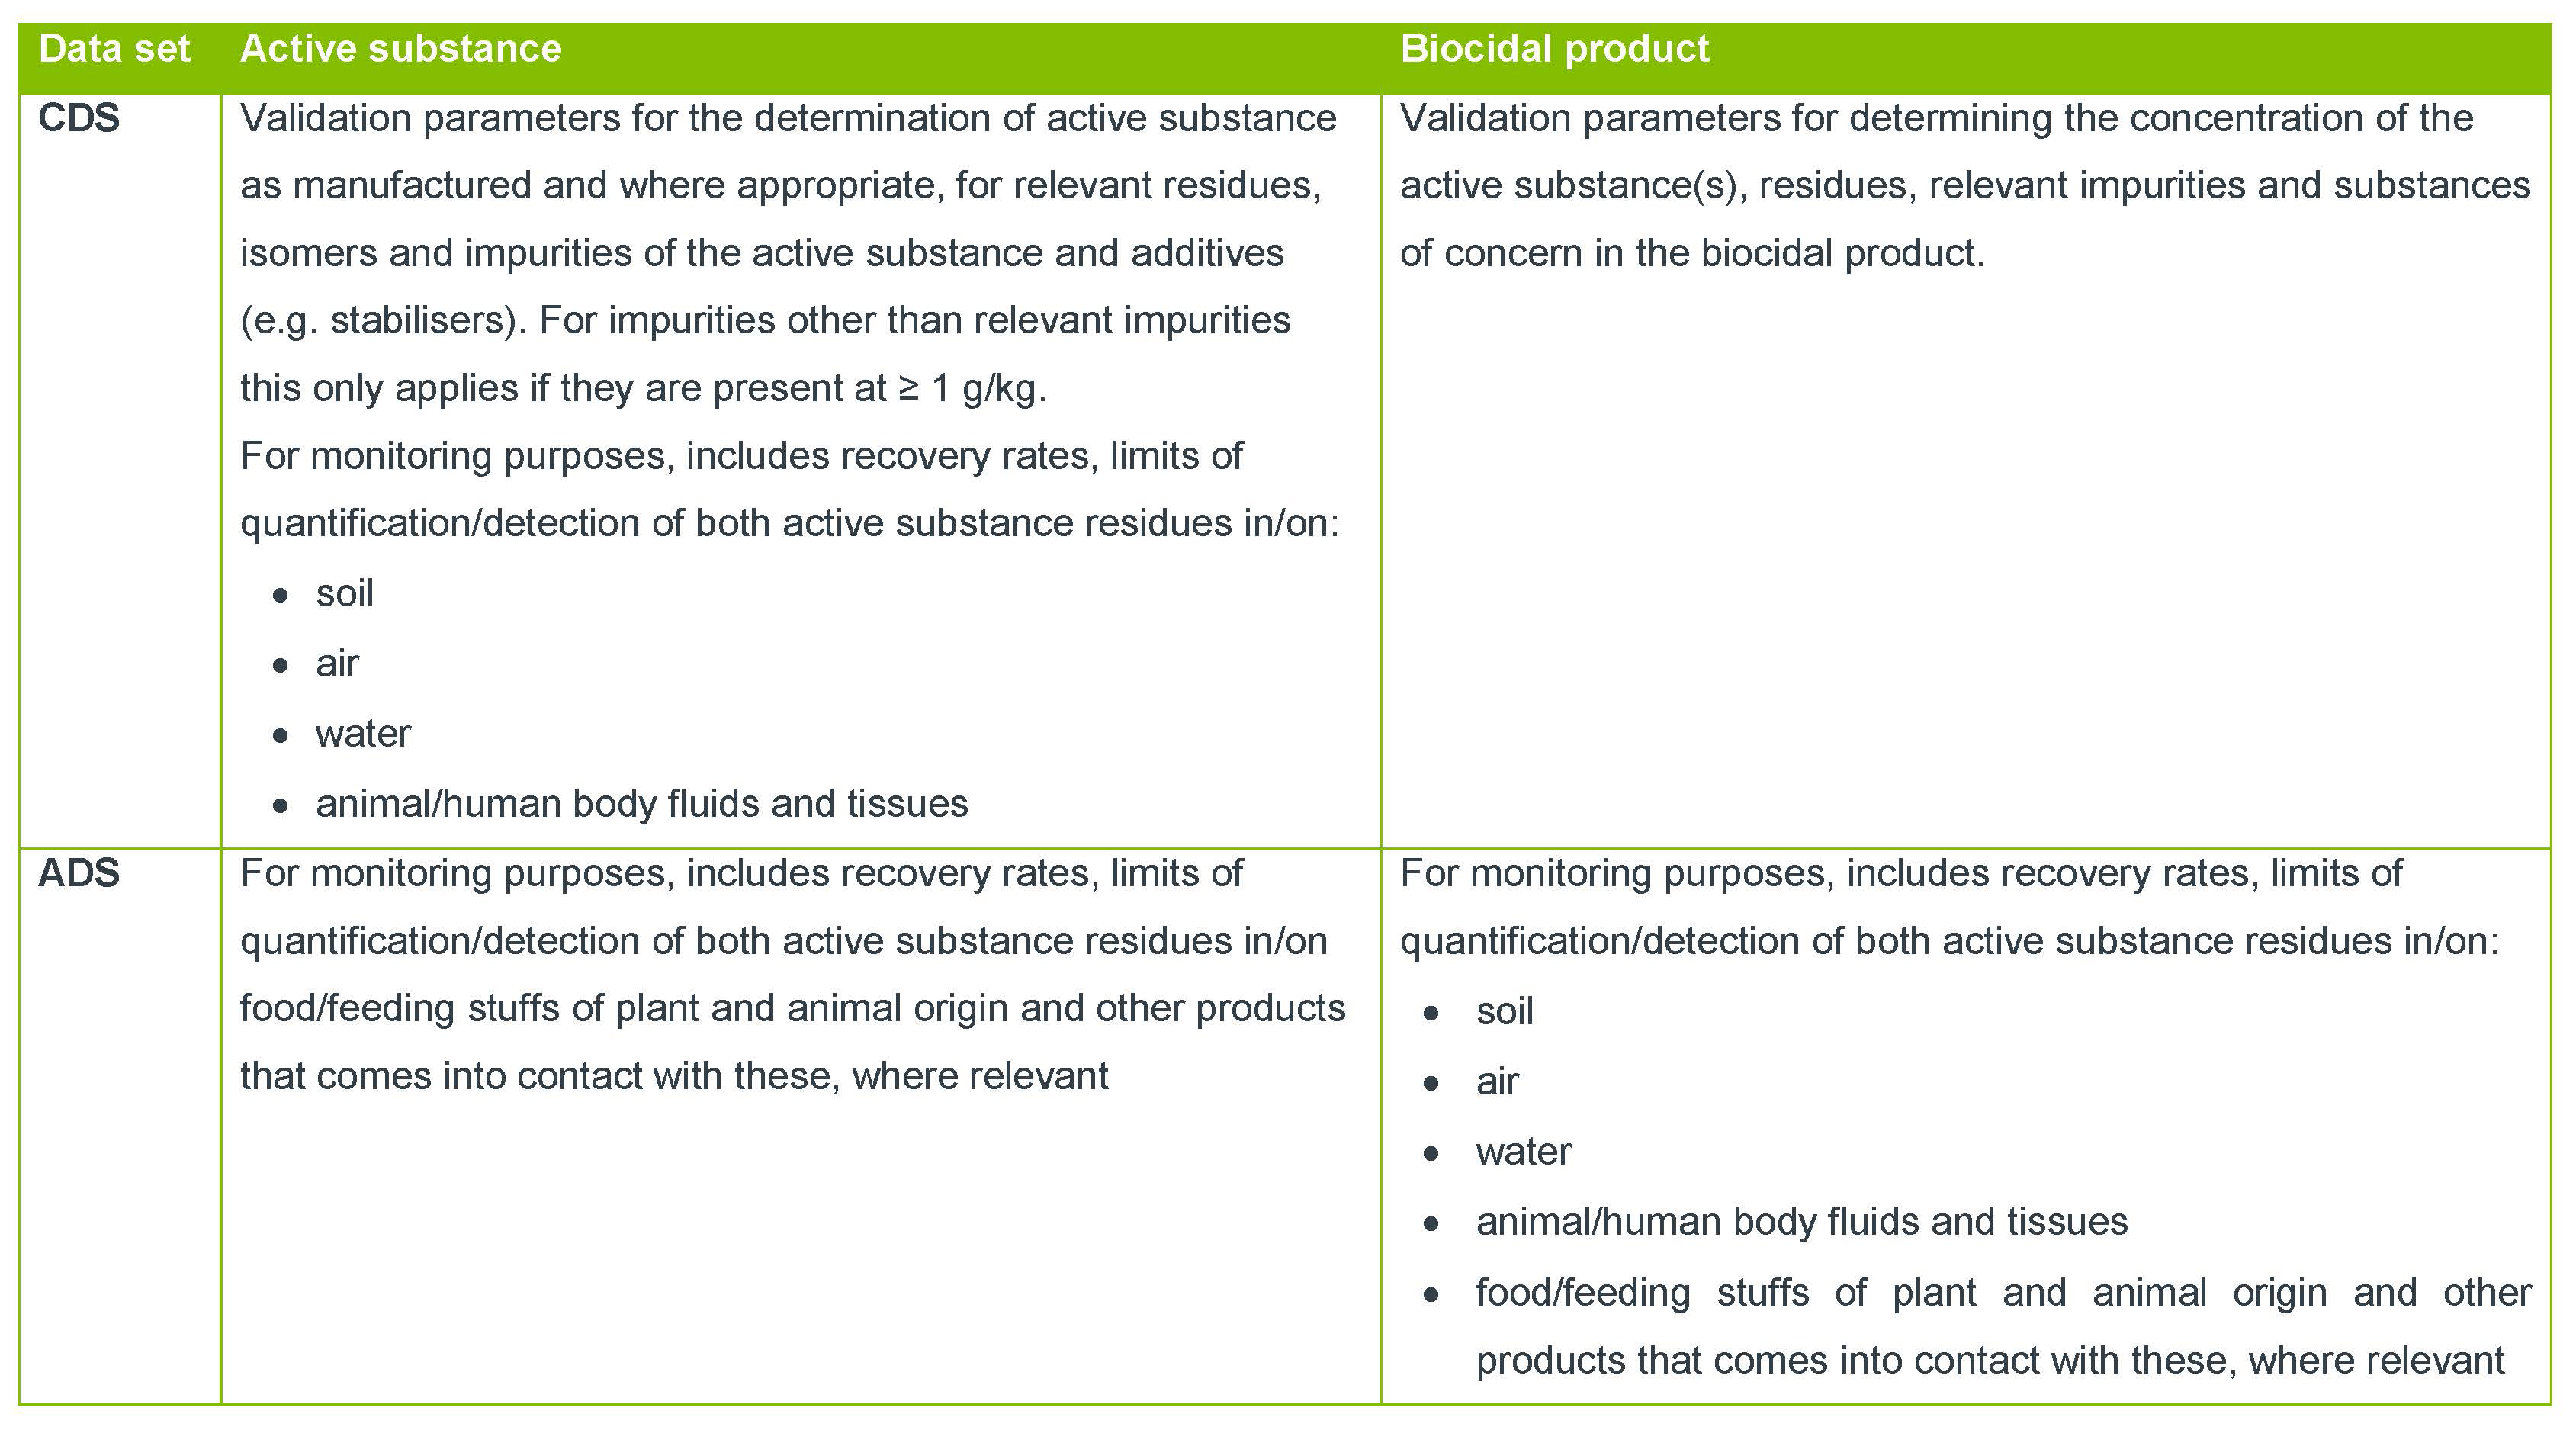 C329 [Blog] Biocides 1 - Biocidal Products Regulation_v2_table only_FINAL